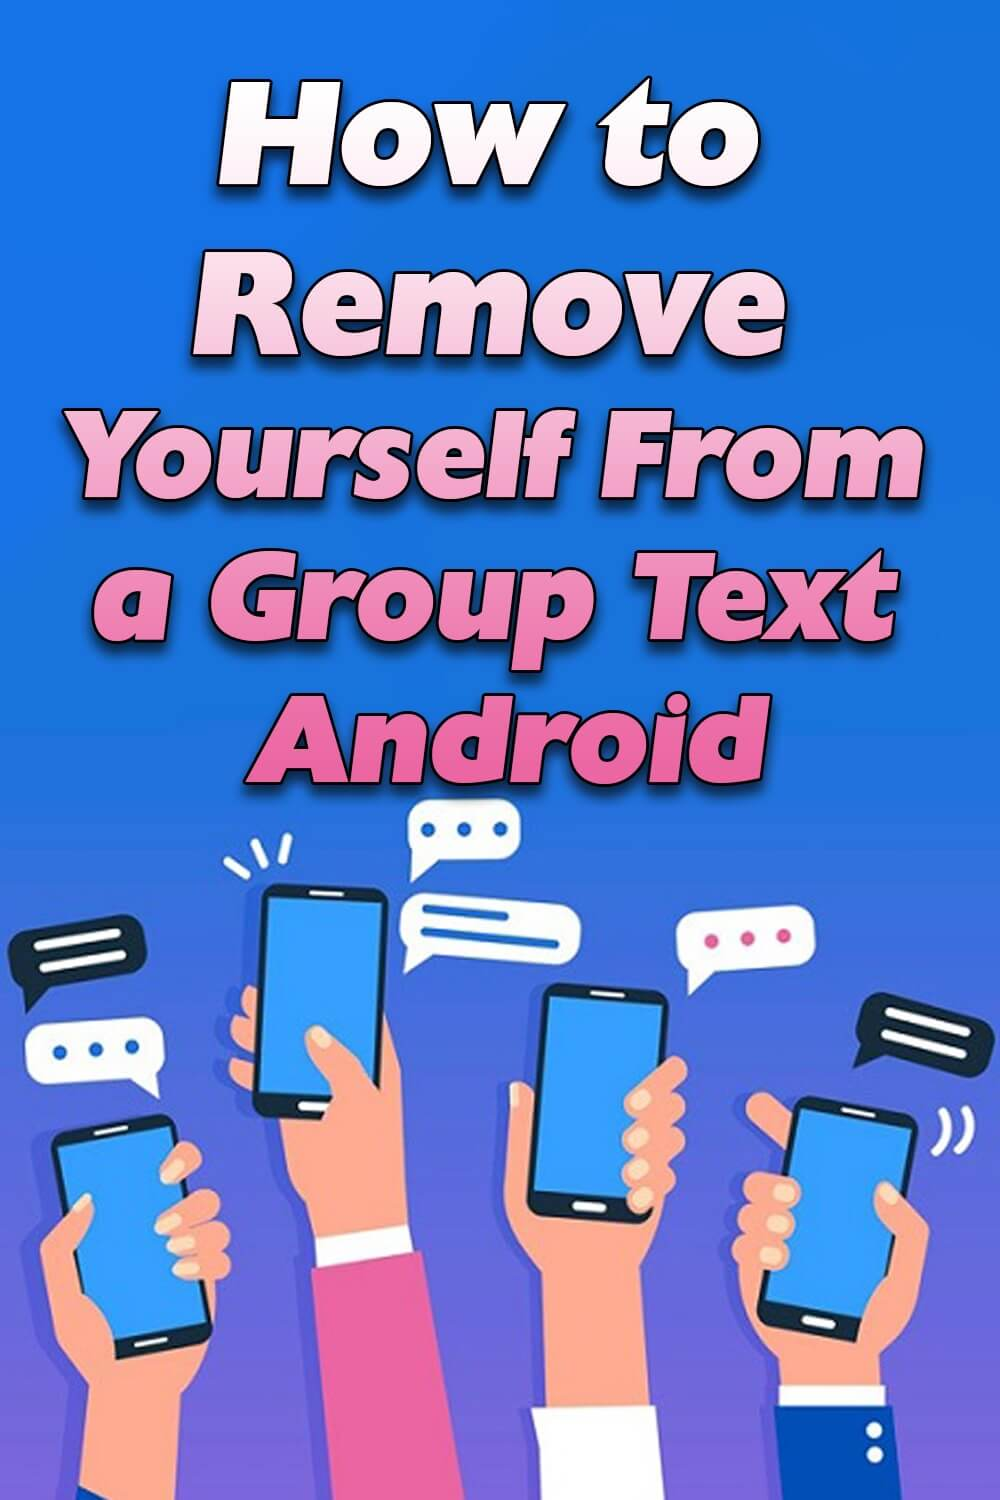 how-to-remove-yourself-from-a-group-text-first-image